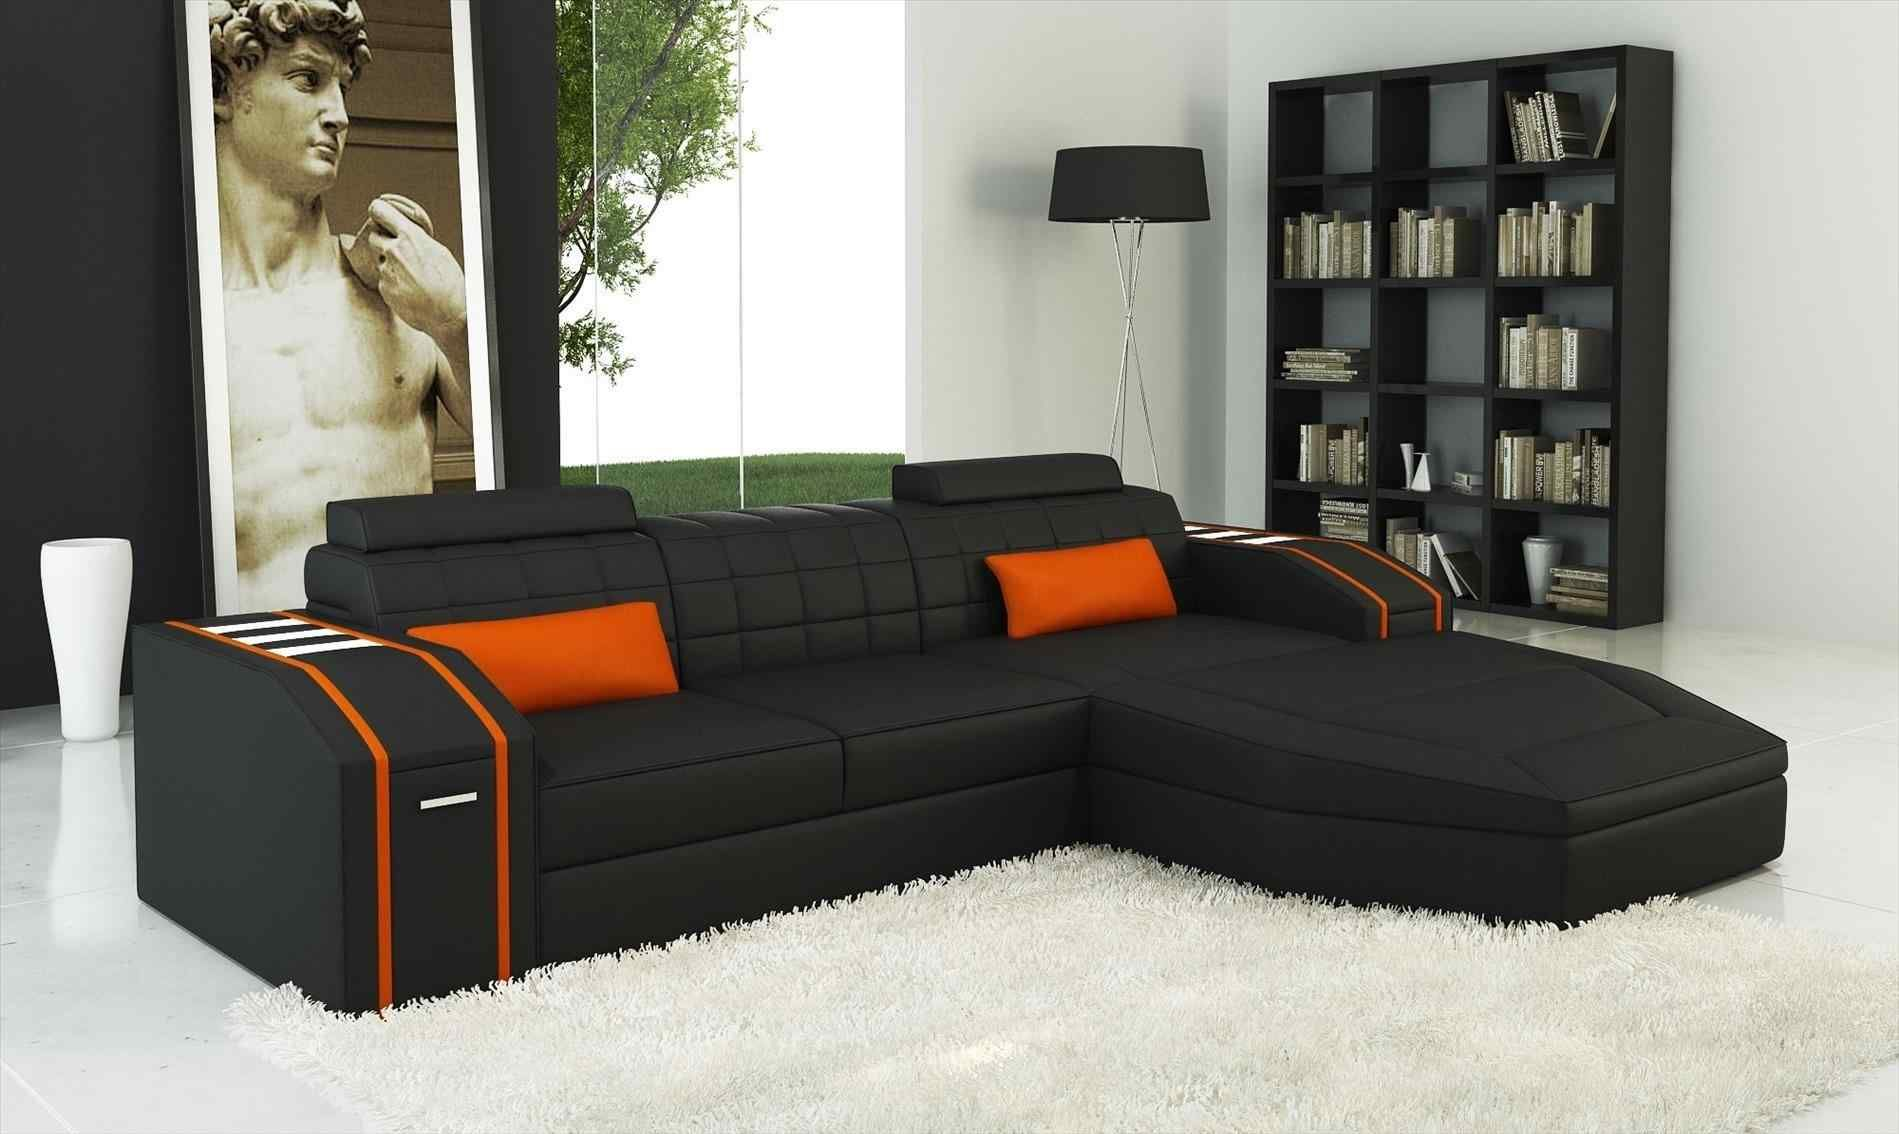 Cheap Discount Sectional Sofas For Sale Contemporary S Tourdecarrollcom  Sleeper Sofa Tourdecarrollcom Discount Sectional Sofas For